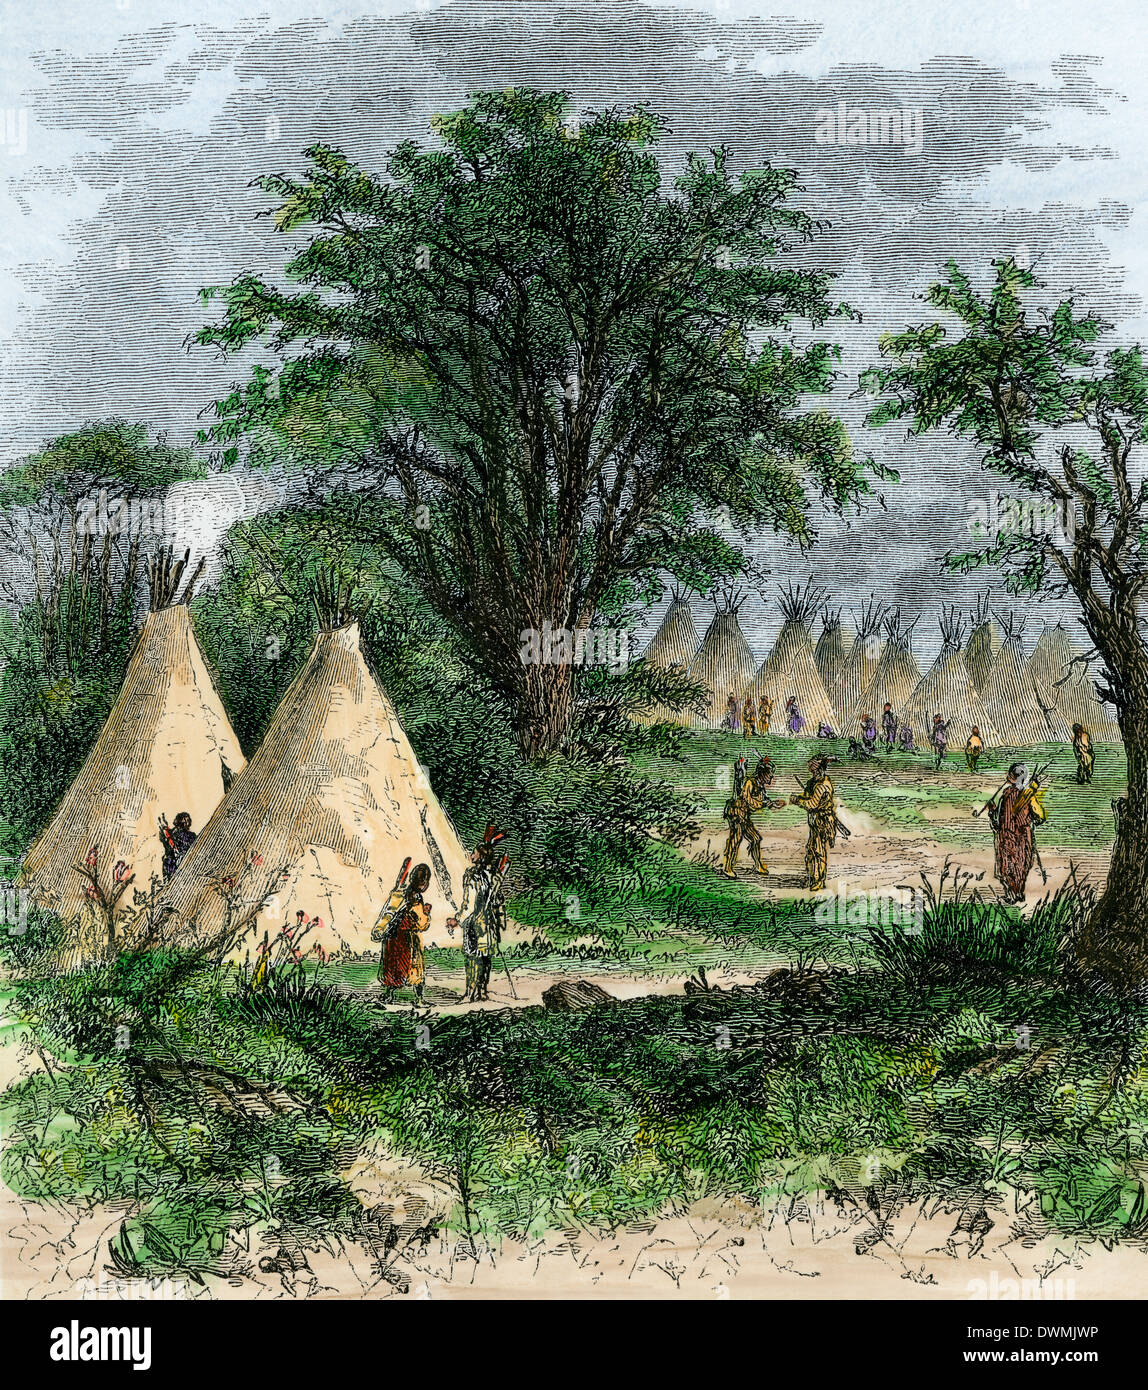 Native American Tipi Village S Hand Colored Woodcut